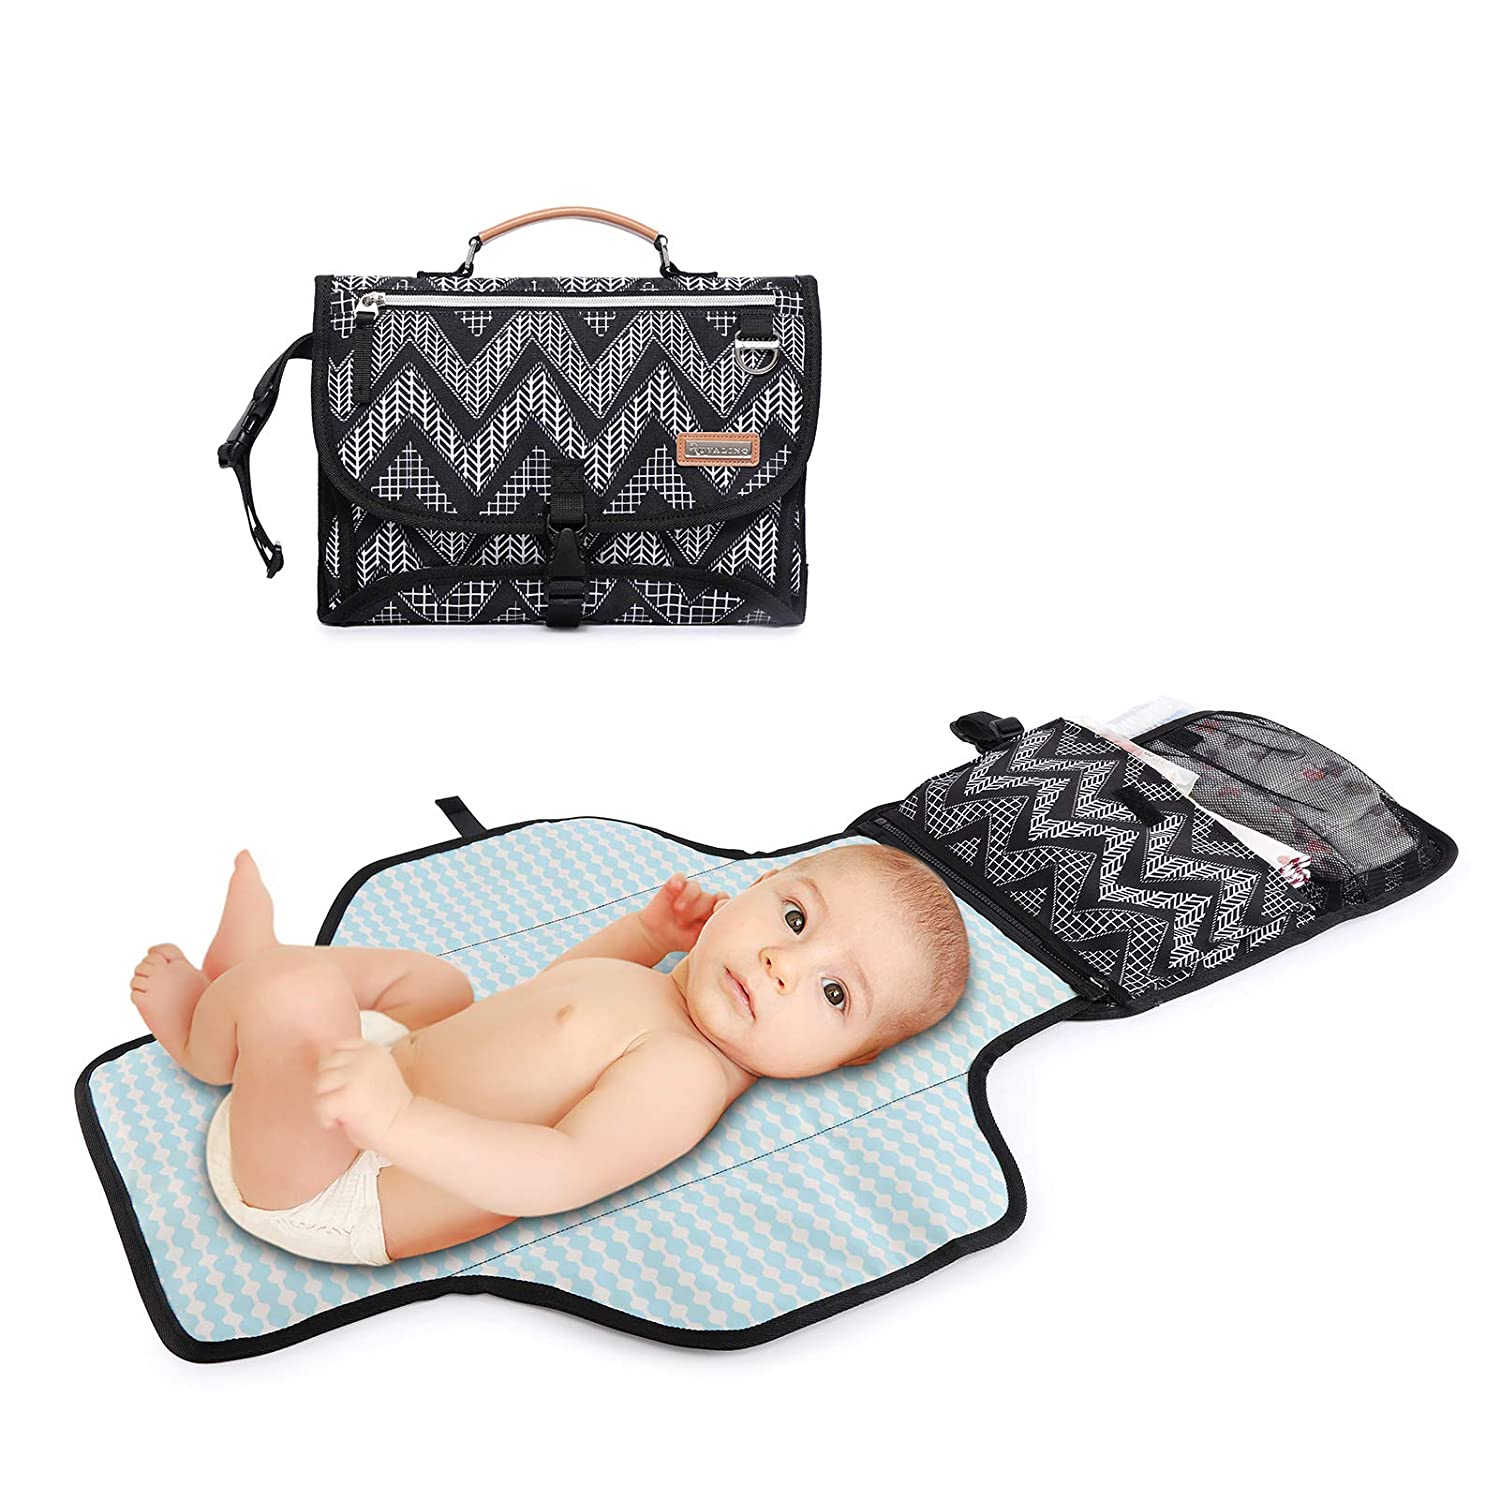 Changing Pad for Diaper Bag, RUVALINO Portable Baby Changing Mat, Waterproof Travel Diaper Clutch, Foldable Changing Wallet for Boys and Girls, Chevron Print